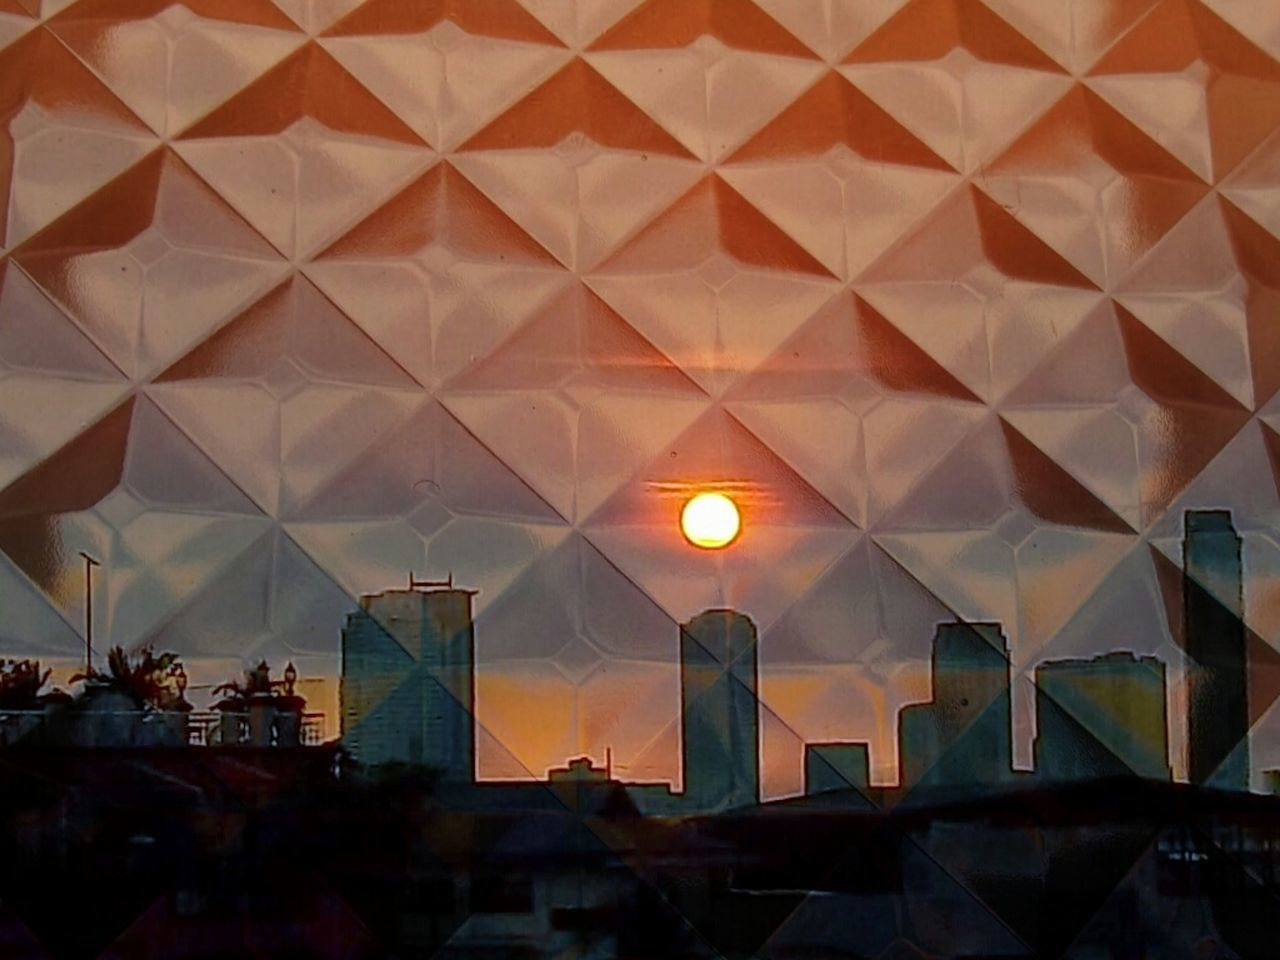 Playing With Filters Double Exposure First Attempt Sunset Check This Out Through The Looking Glass Glass Pattern Patterns Sunset Boulevard Sunset Silhouettes Pixlr Express  Rooftop View  Diamond Pattern Glass Windows Perspectives And Dimensions Sunlight And Shadow Contrast And Lights Light - Natural Phenomenon Building Blocks